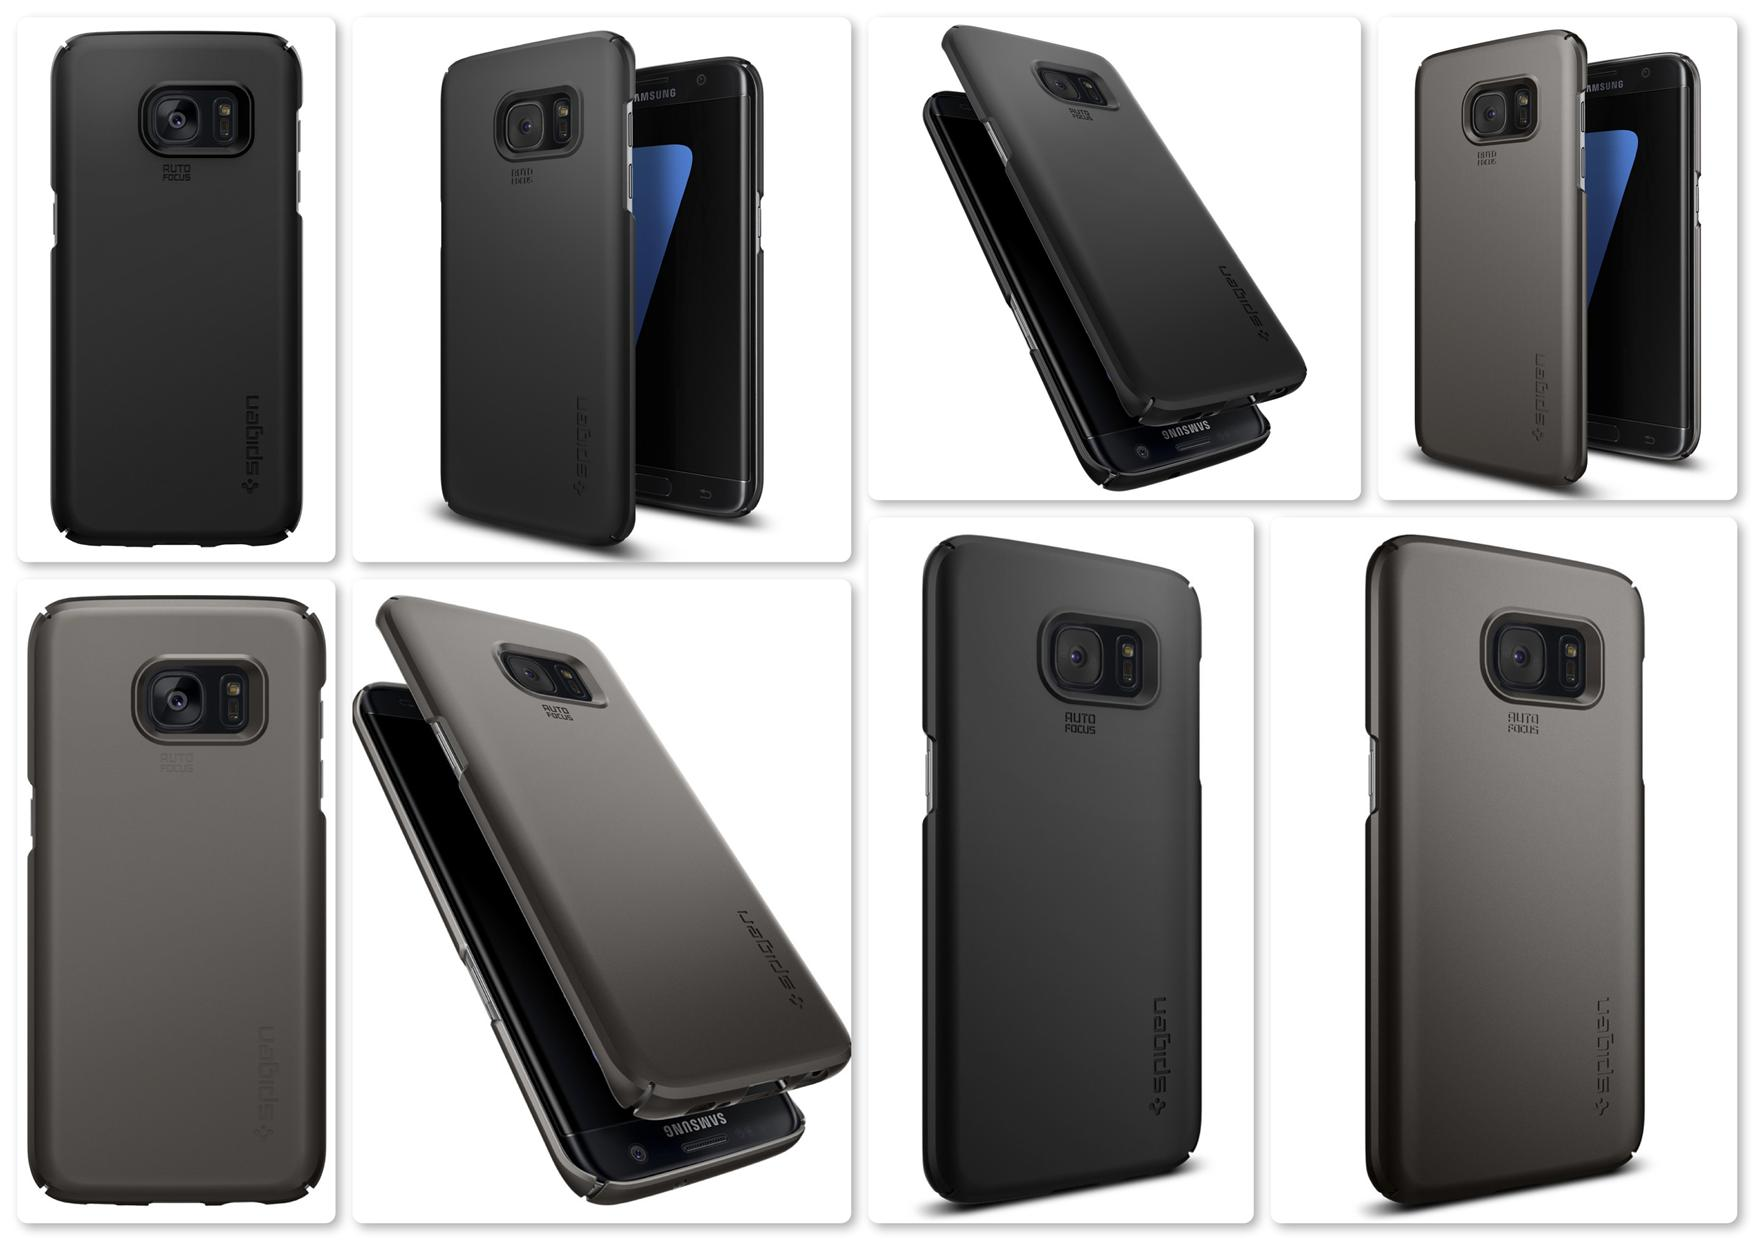 Samsung Galaxy S7 Edge Original Spigen Thin Fit series Back Case